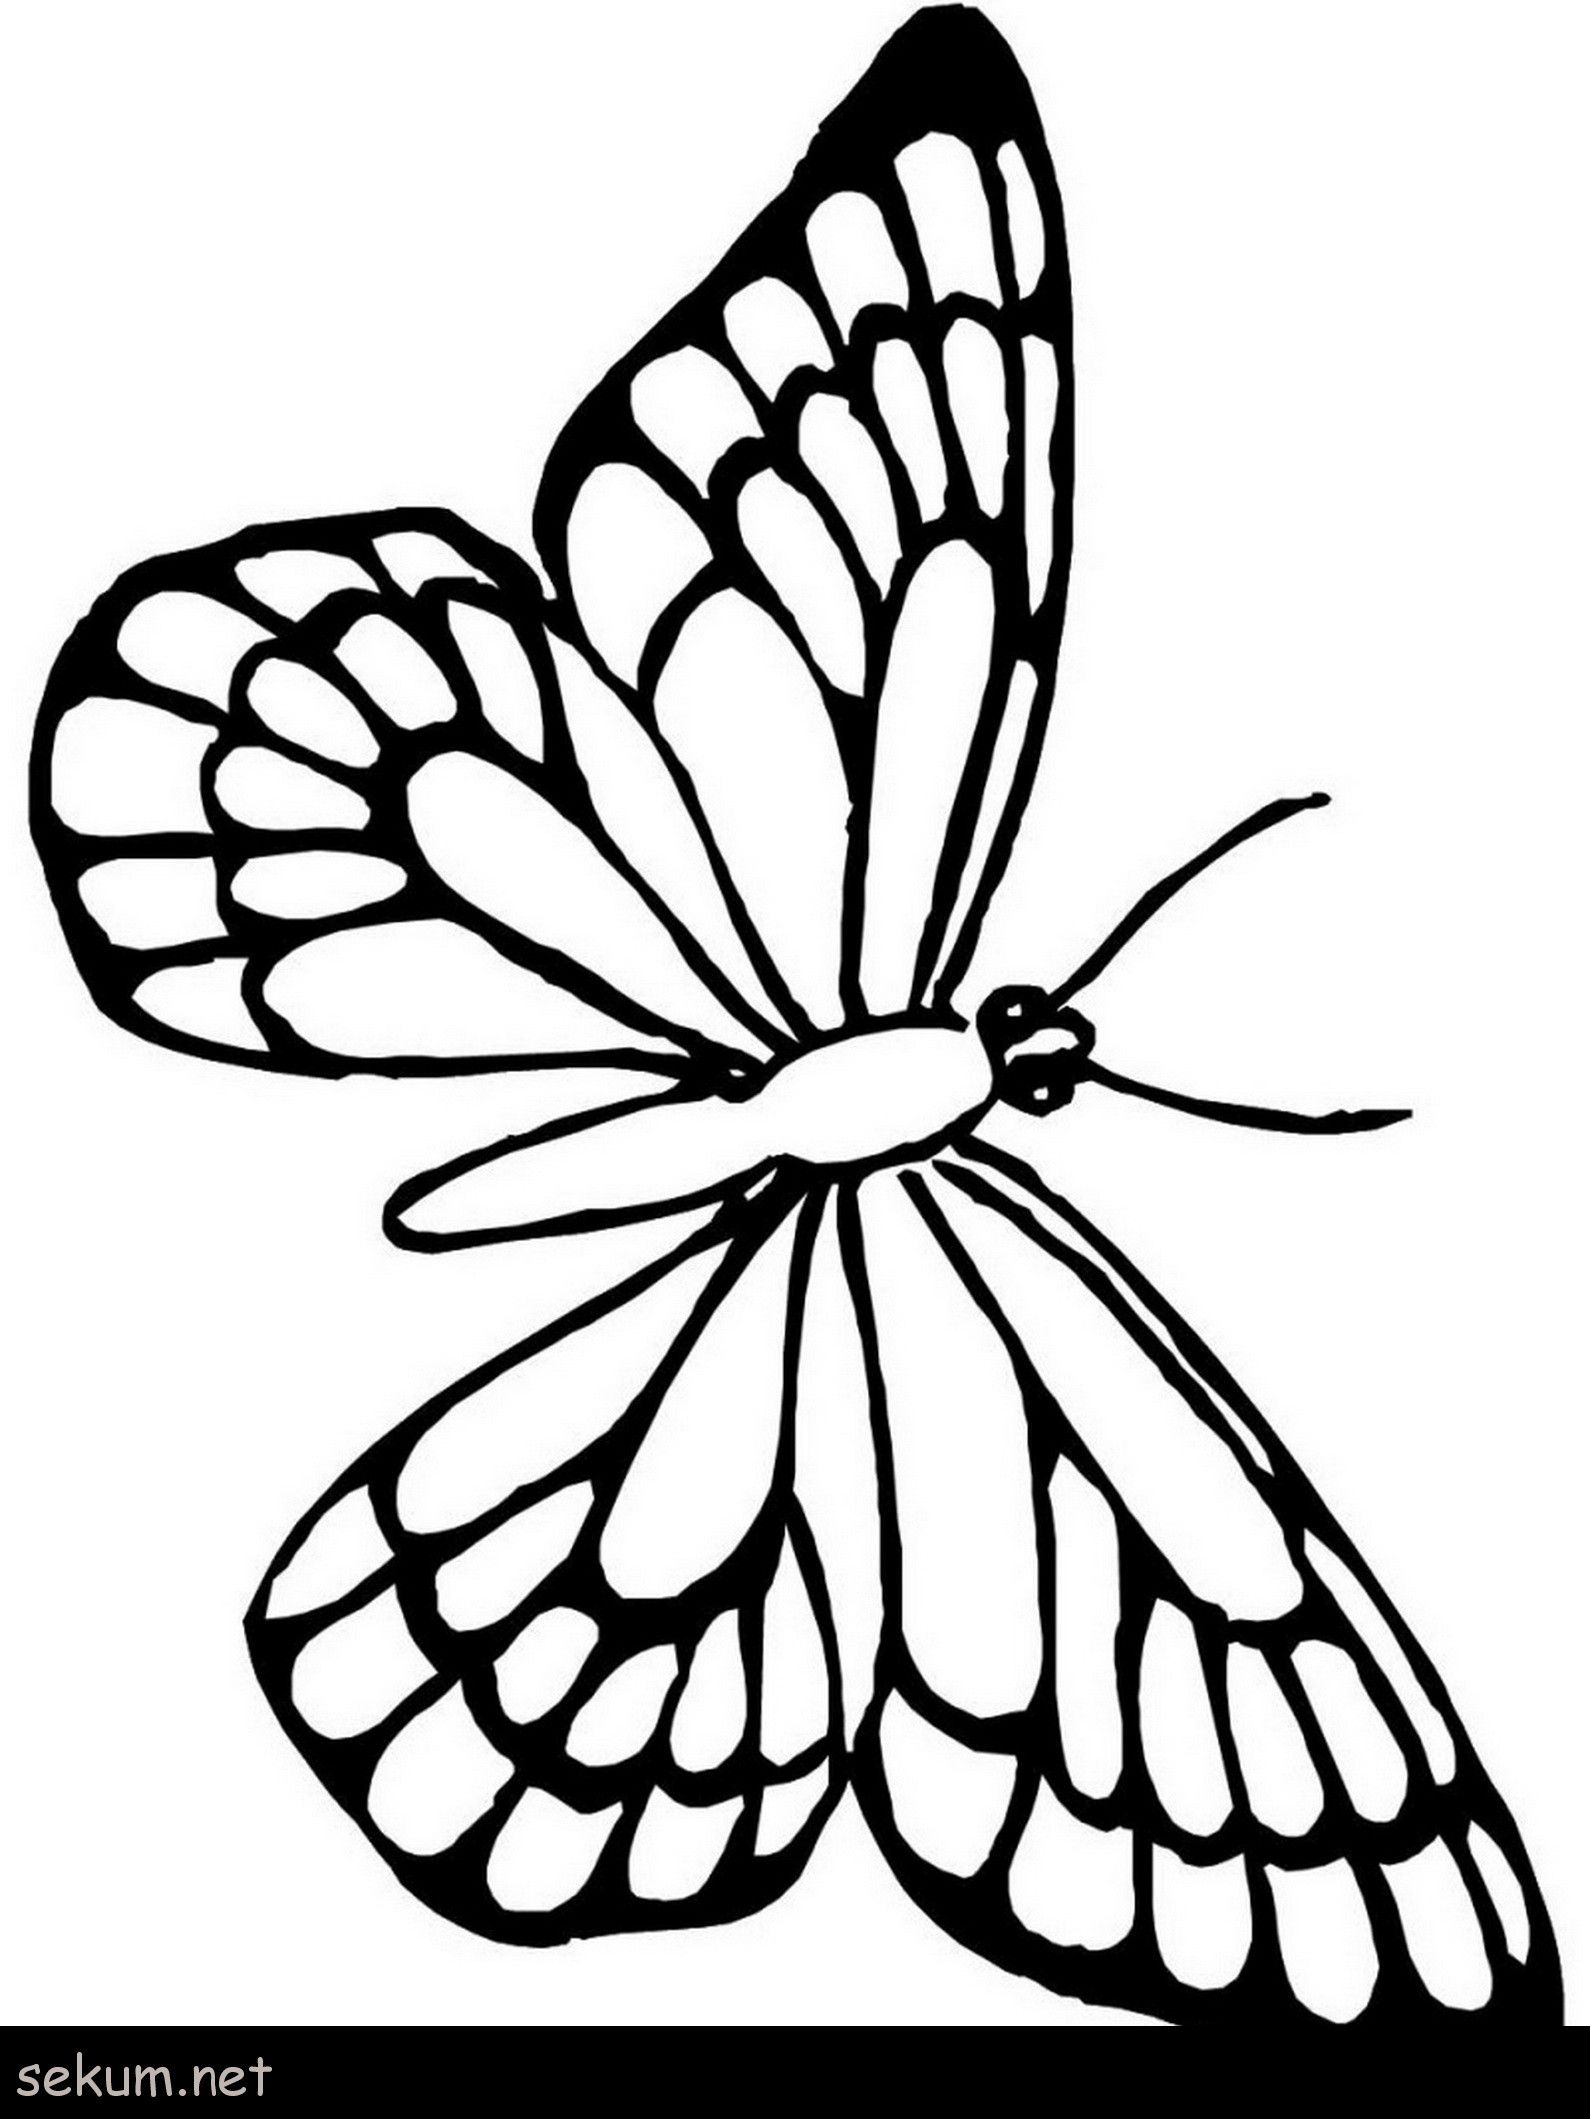 New 50 Free Printable Butterfly Coloring Pages For Kids Online Butterfly Coloring Page Love Coloring Pages Butterfly Outline